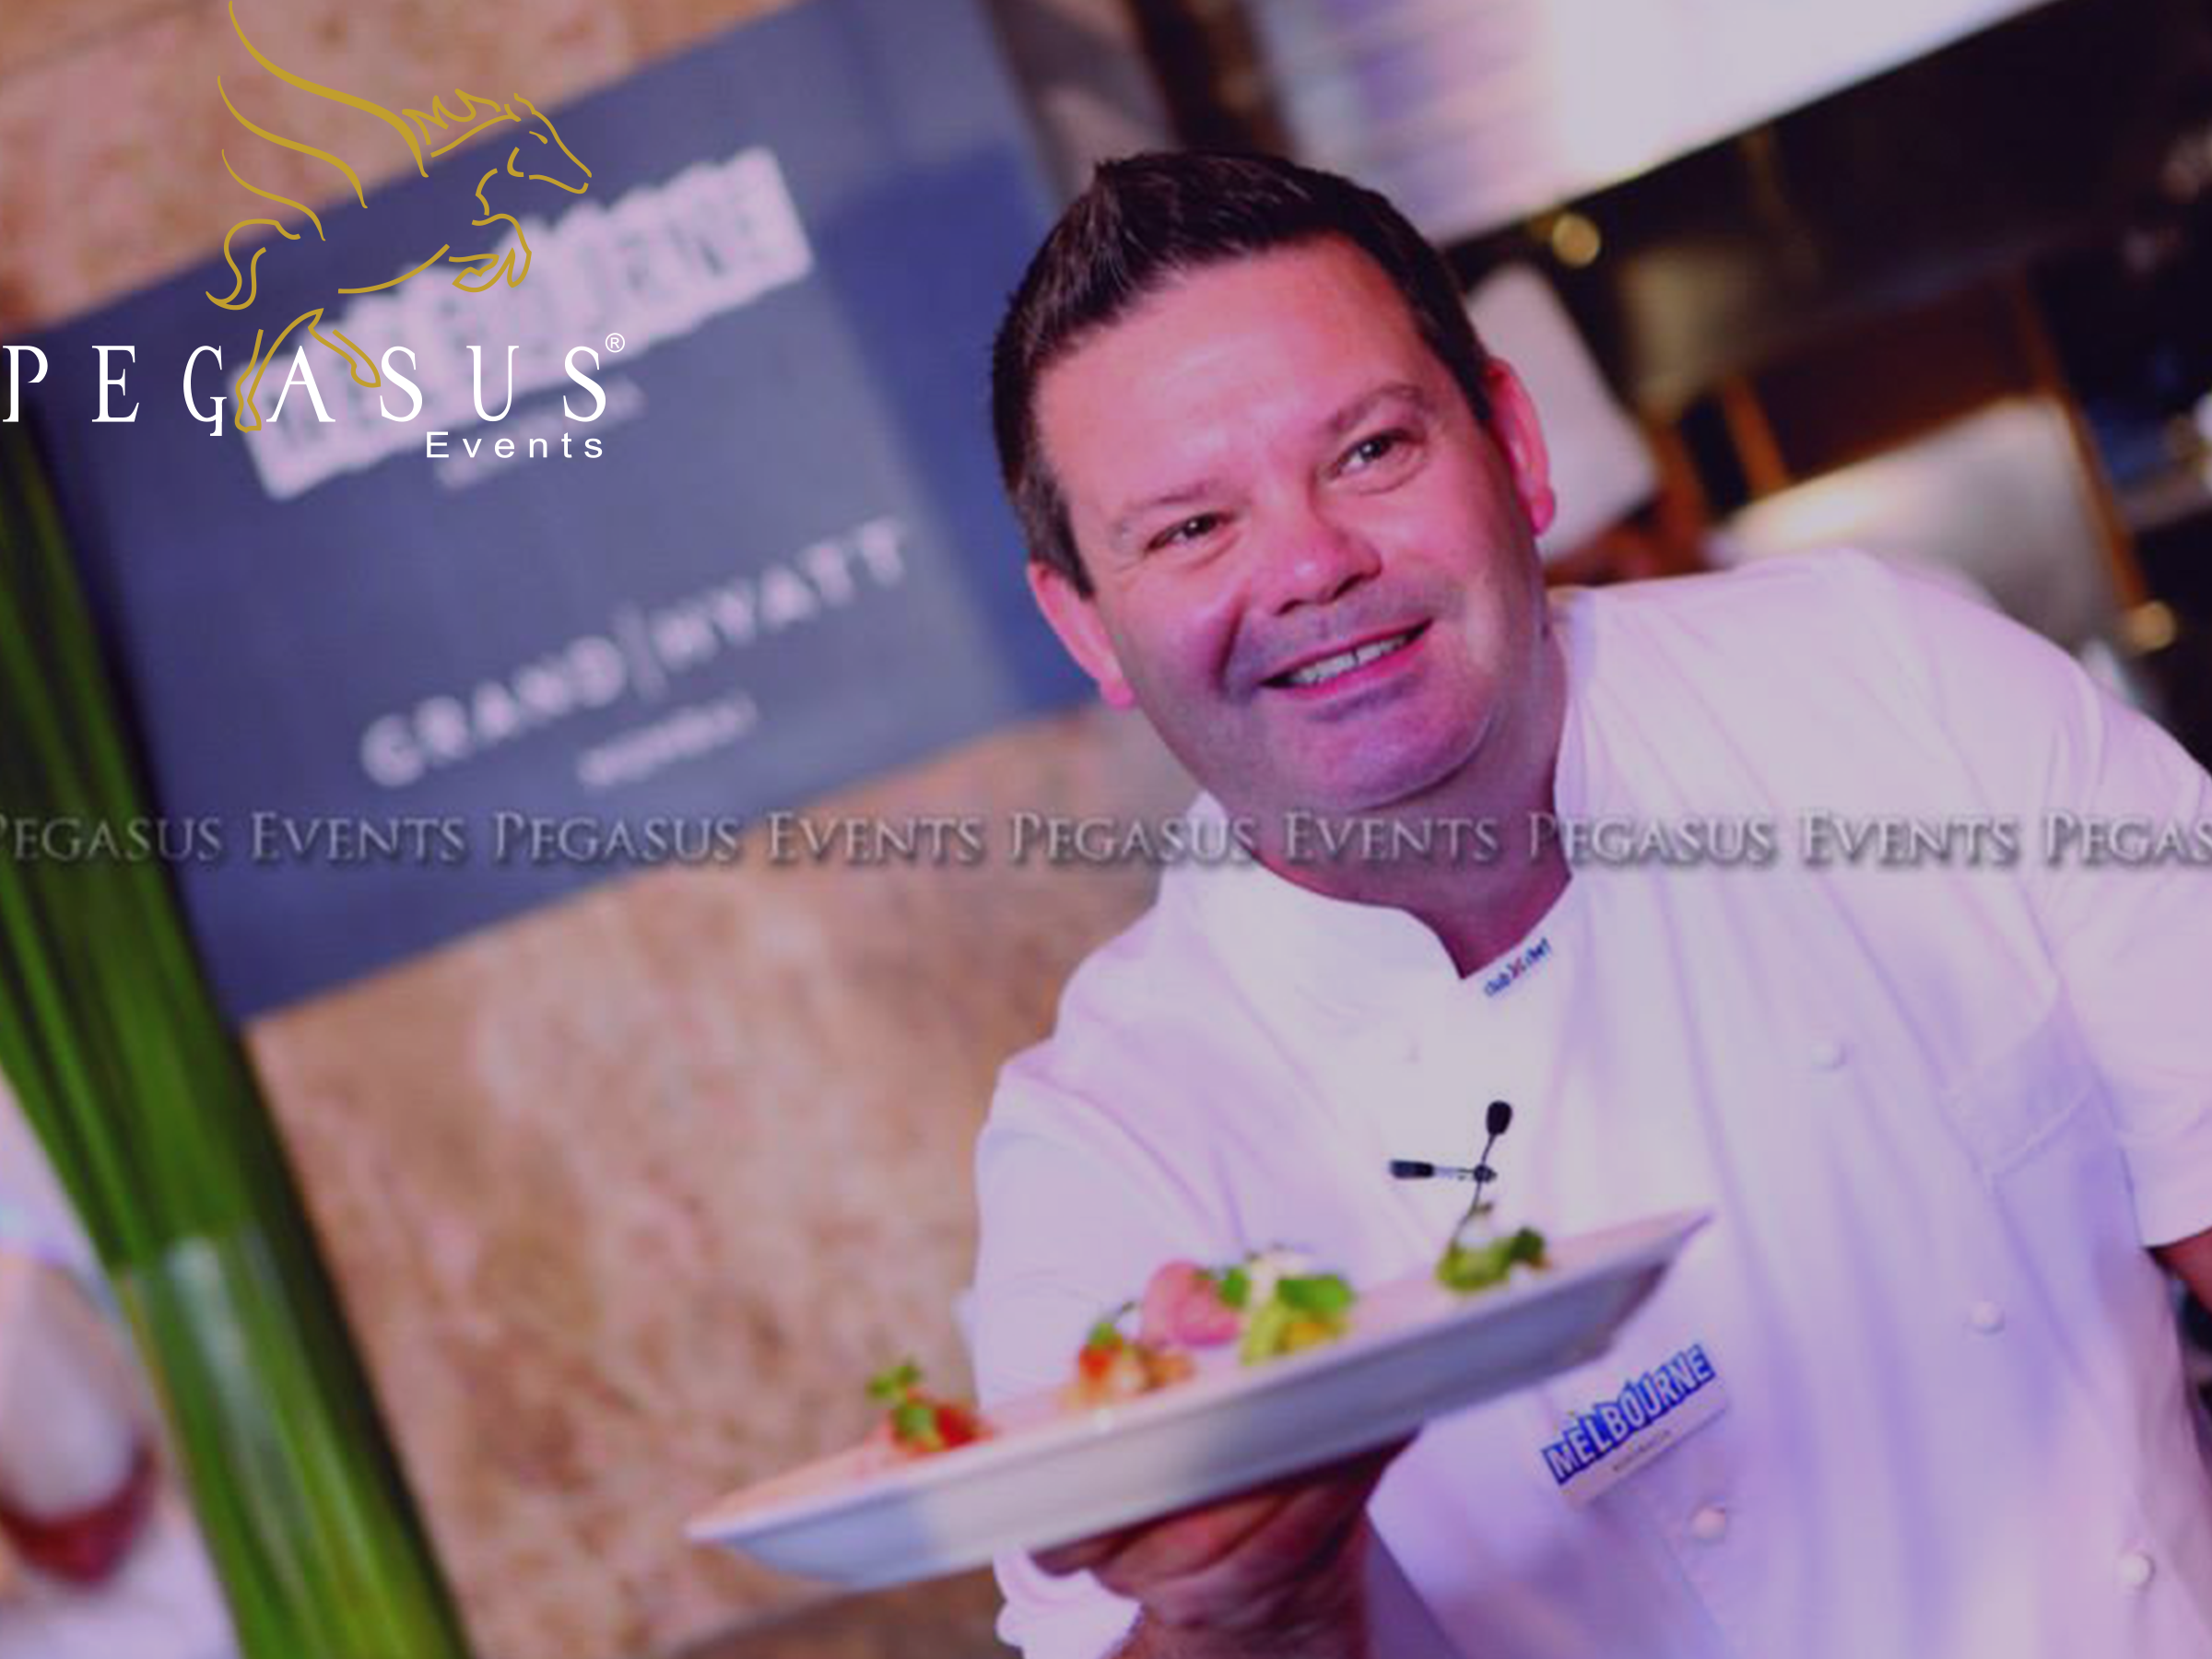 Media Masterclass with Gary Mehigan organized by Pegasus Events